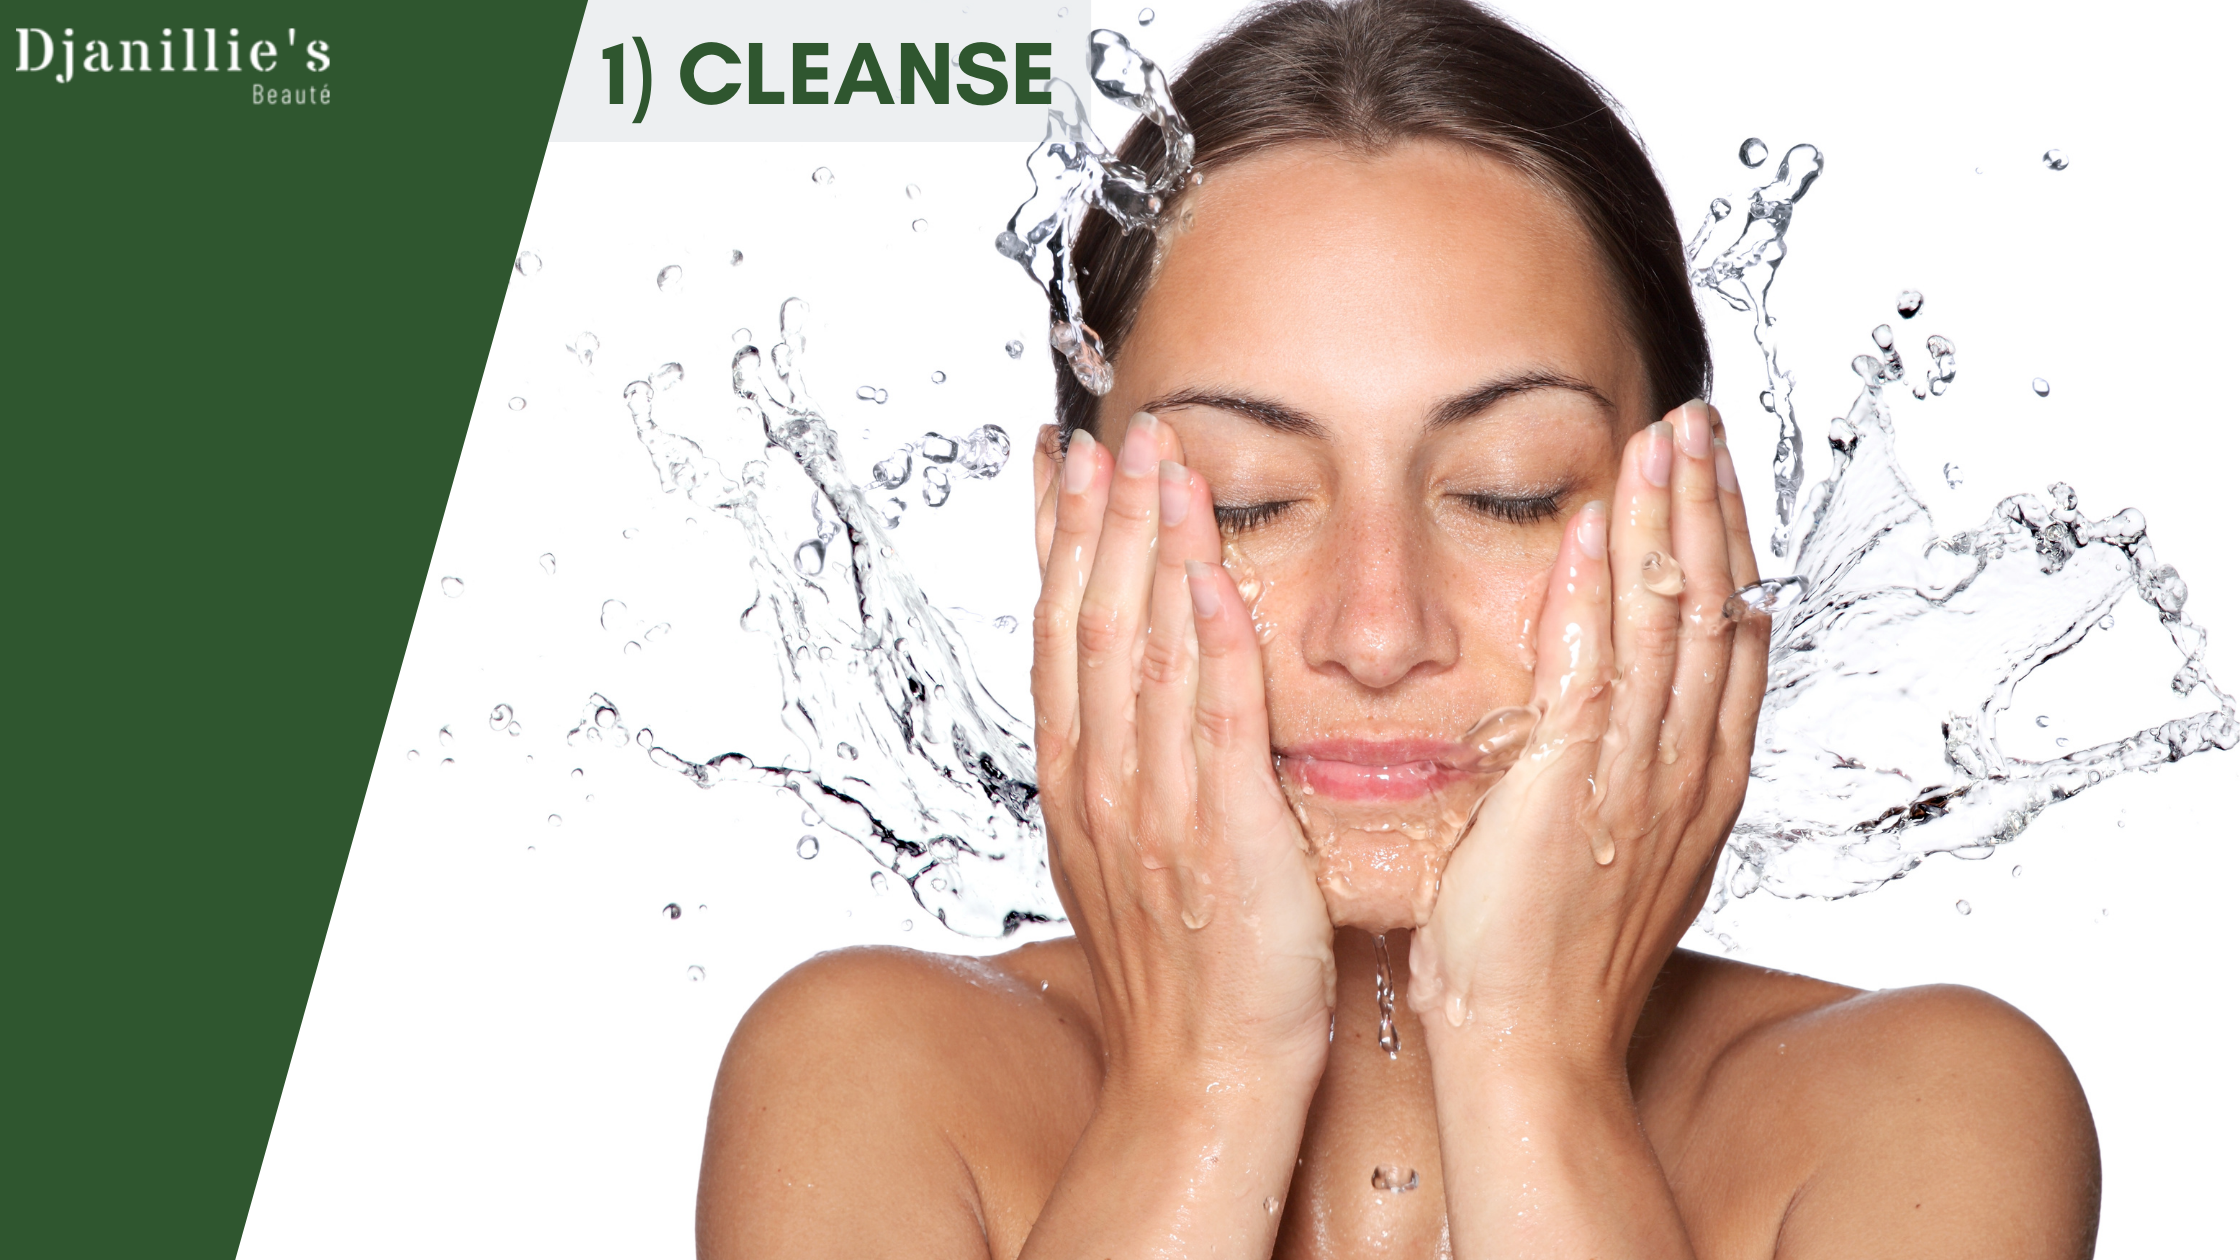 4 Steps Of Skin Care - Cleanse